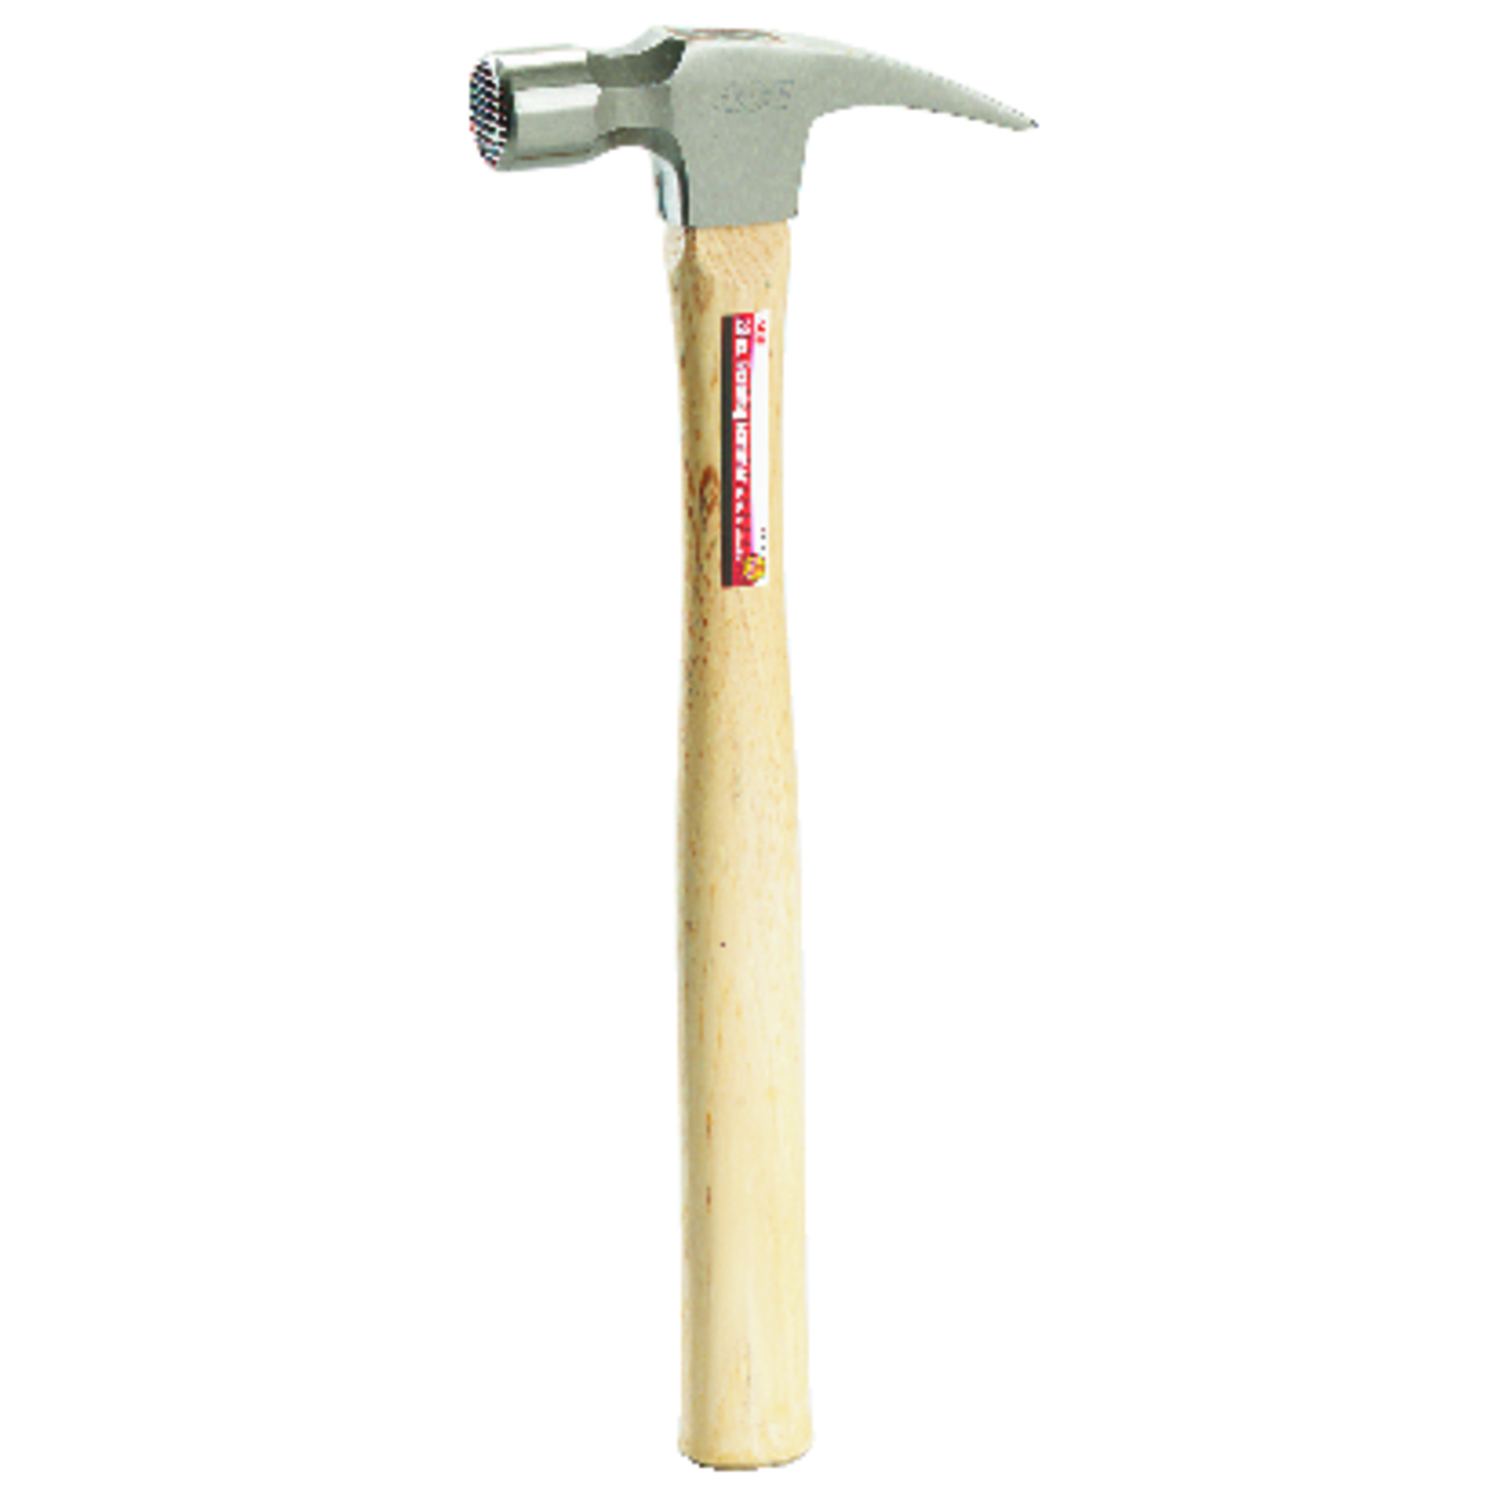 Ace  22 oz. Framing Hammer  Carbon Steel  Hickory Handle  15.81 in. L